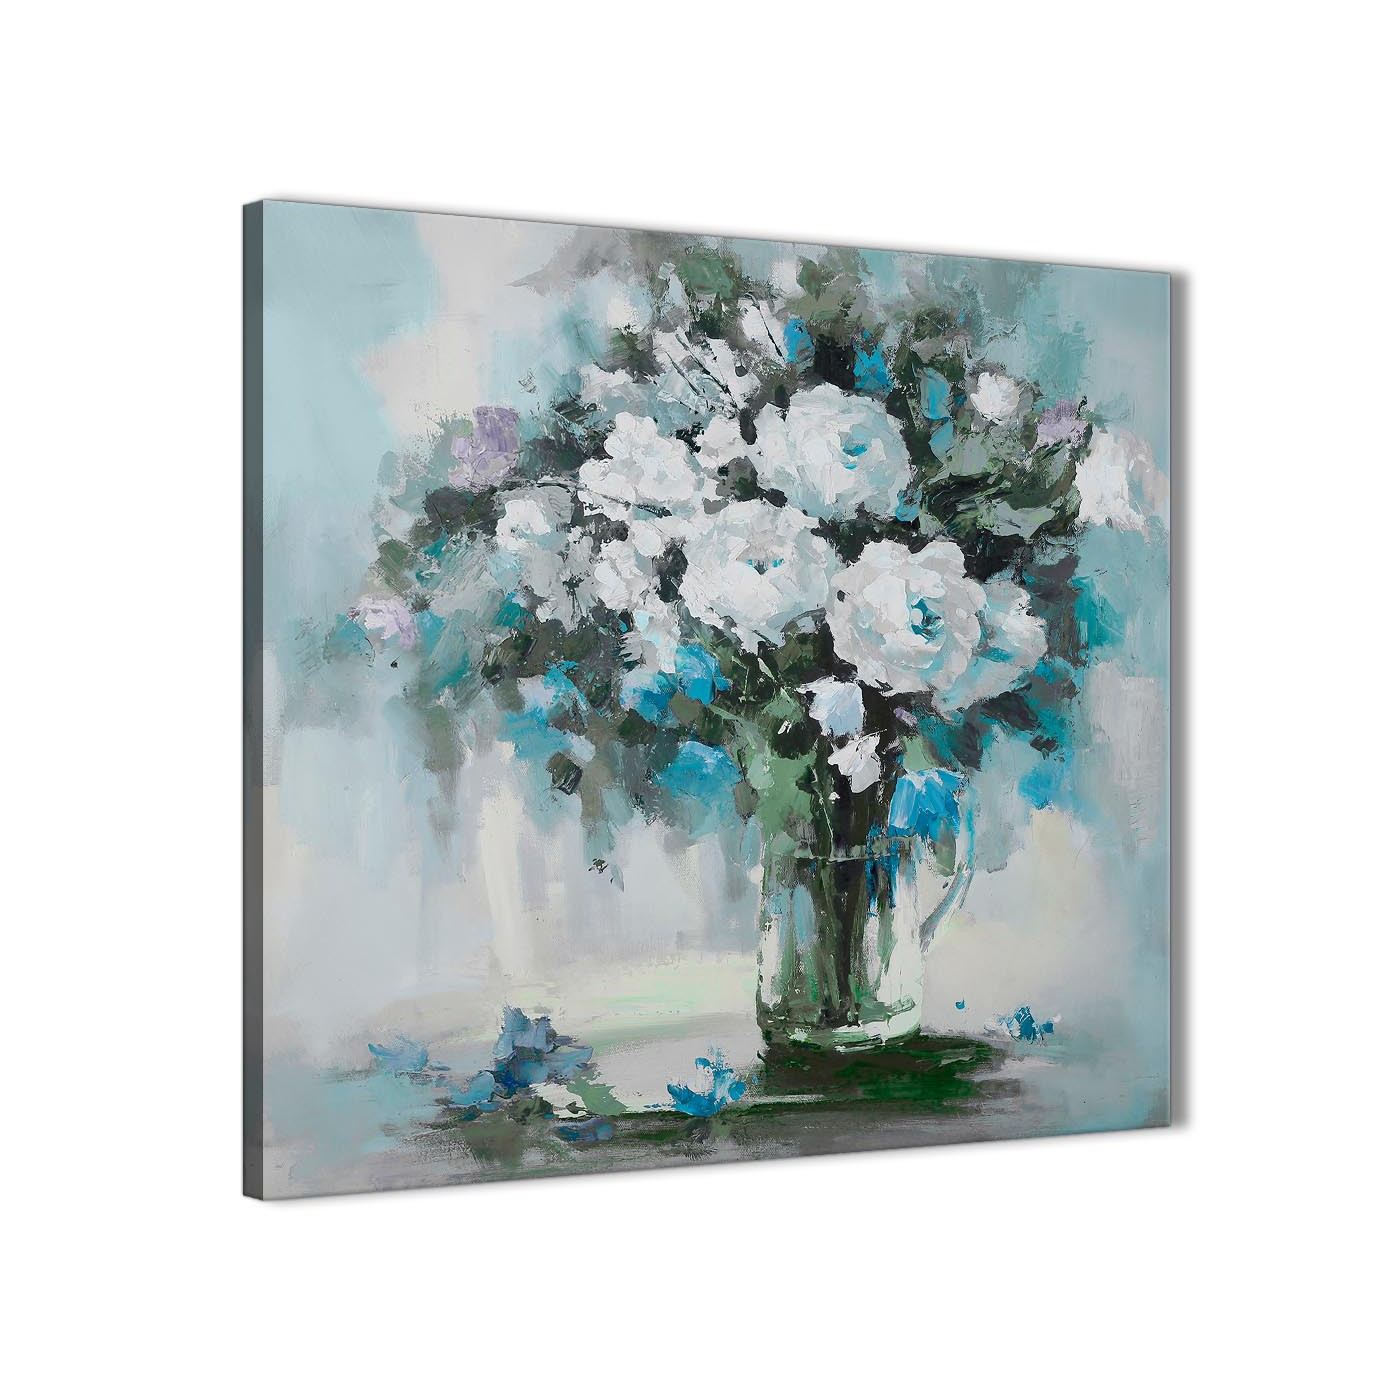 Teal white flowers painting bathroom canvas wall art accessories cheap teal white flowers painting kitchen canvas wall art accessories abstract 1s440s 49cm square display gallery item 1 mightylinksfo